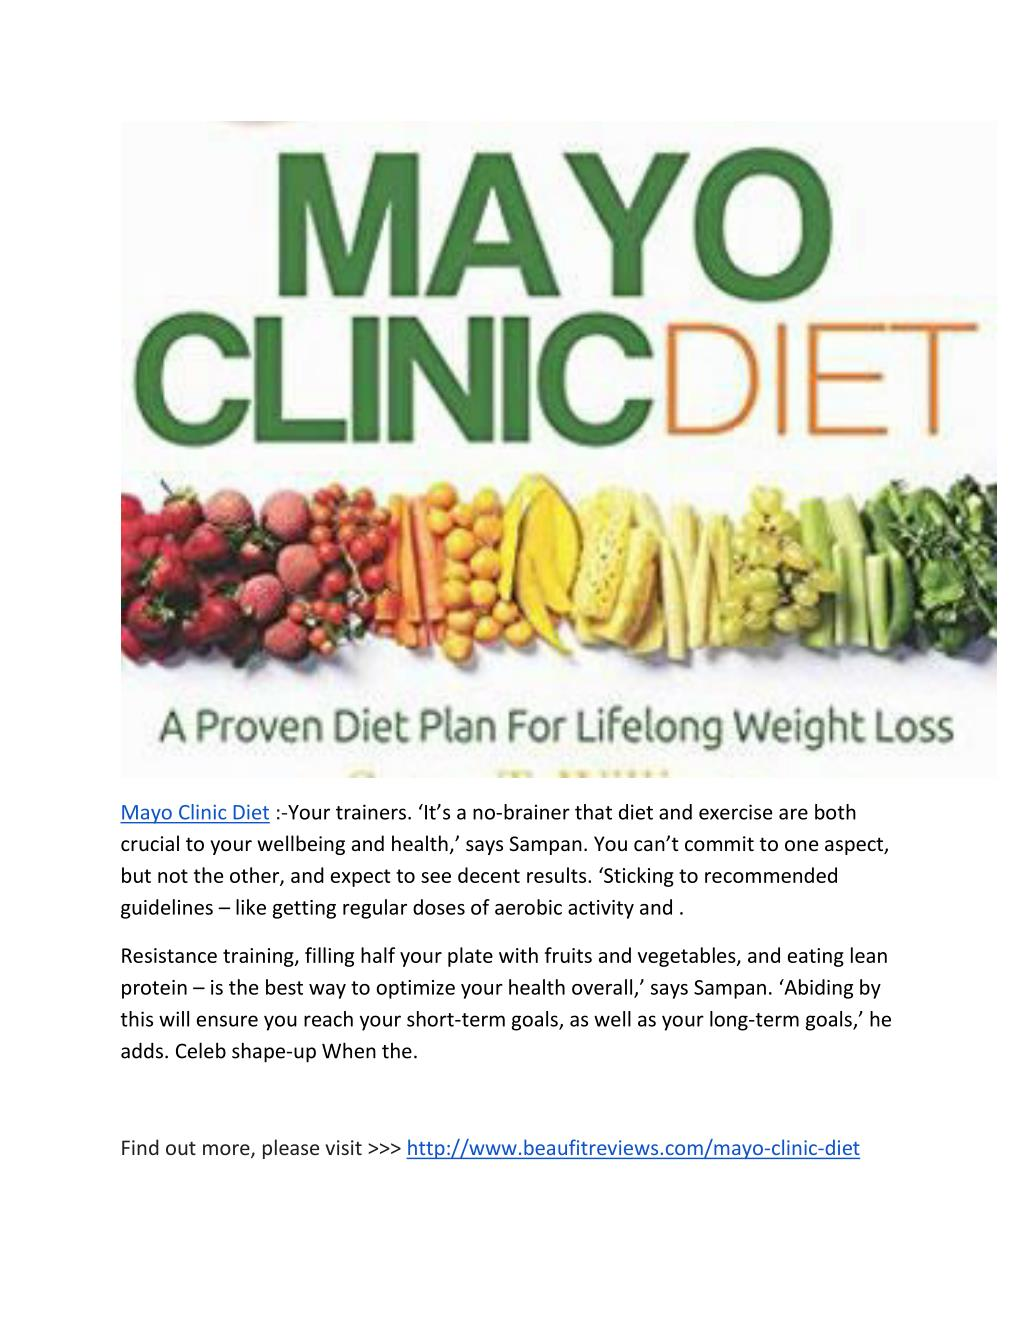 mayo-clinic-diet PowerPoint